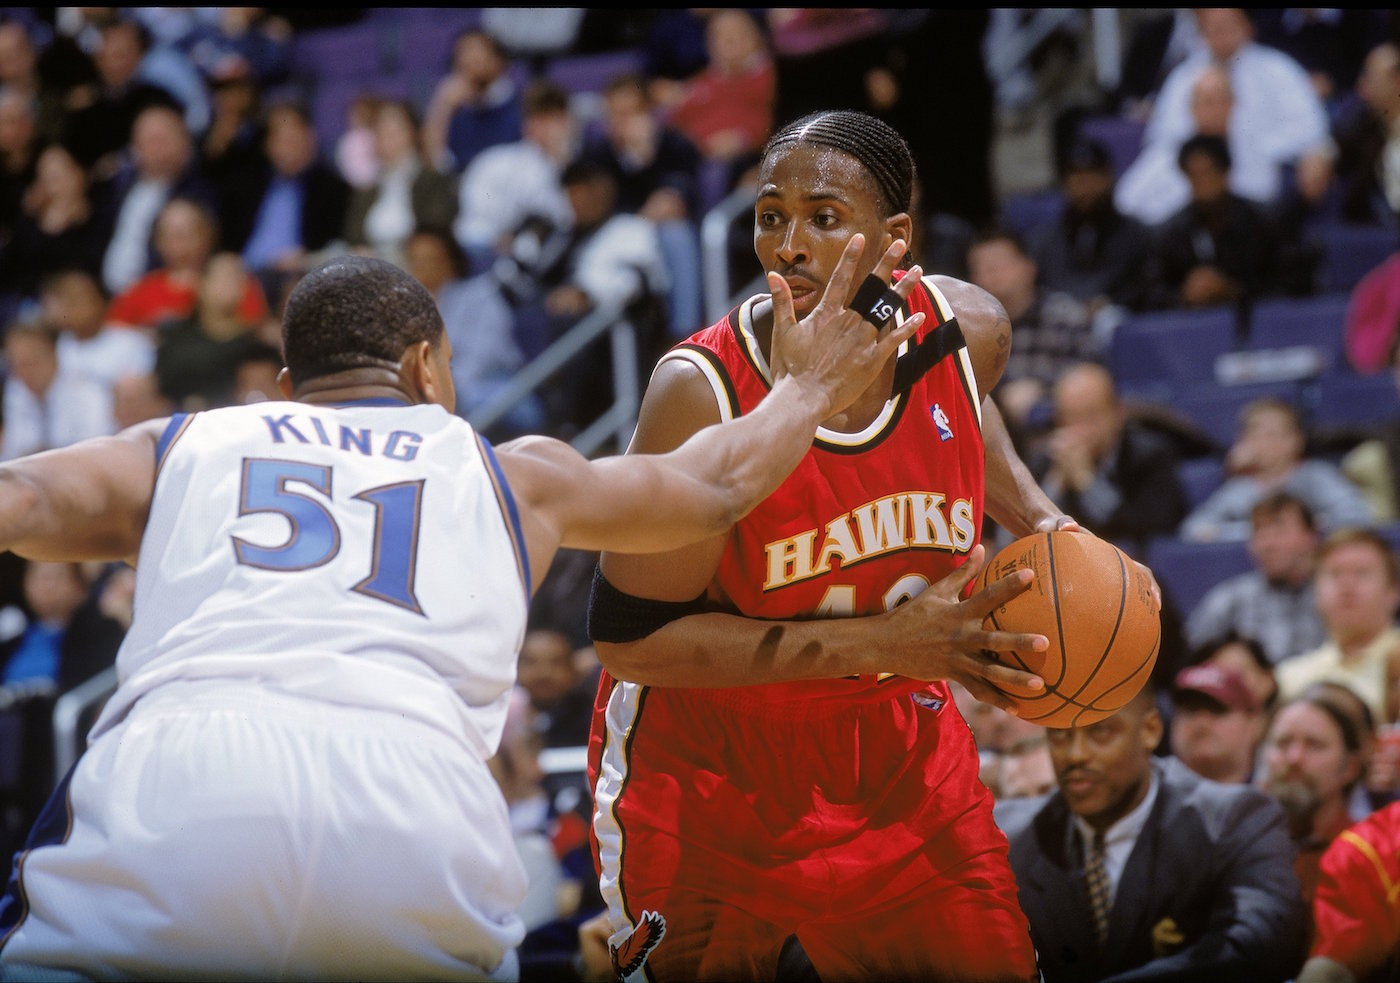 Lorenzen Wright's ex-wife arrested in connection with his murder